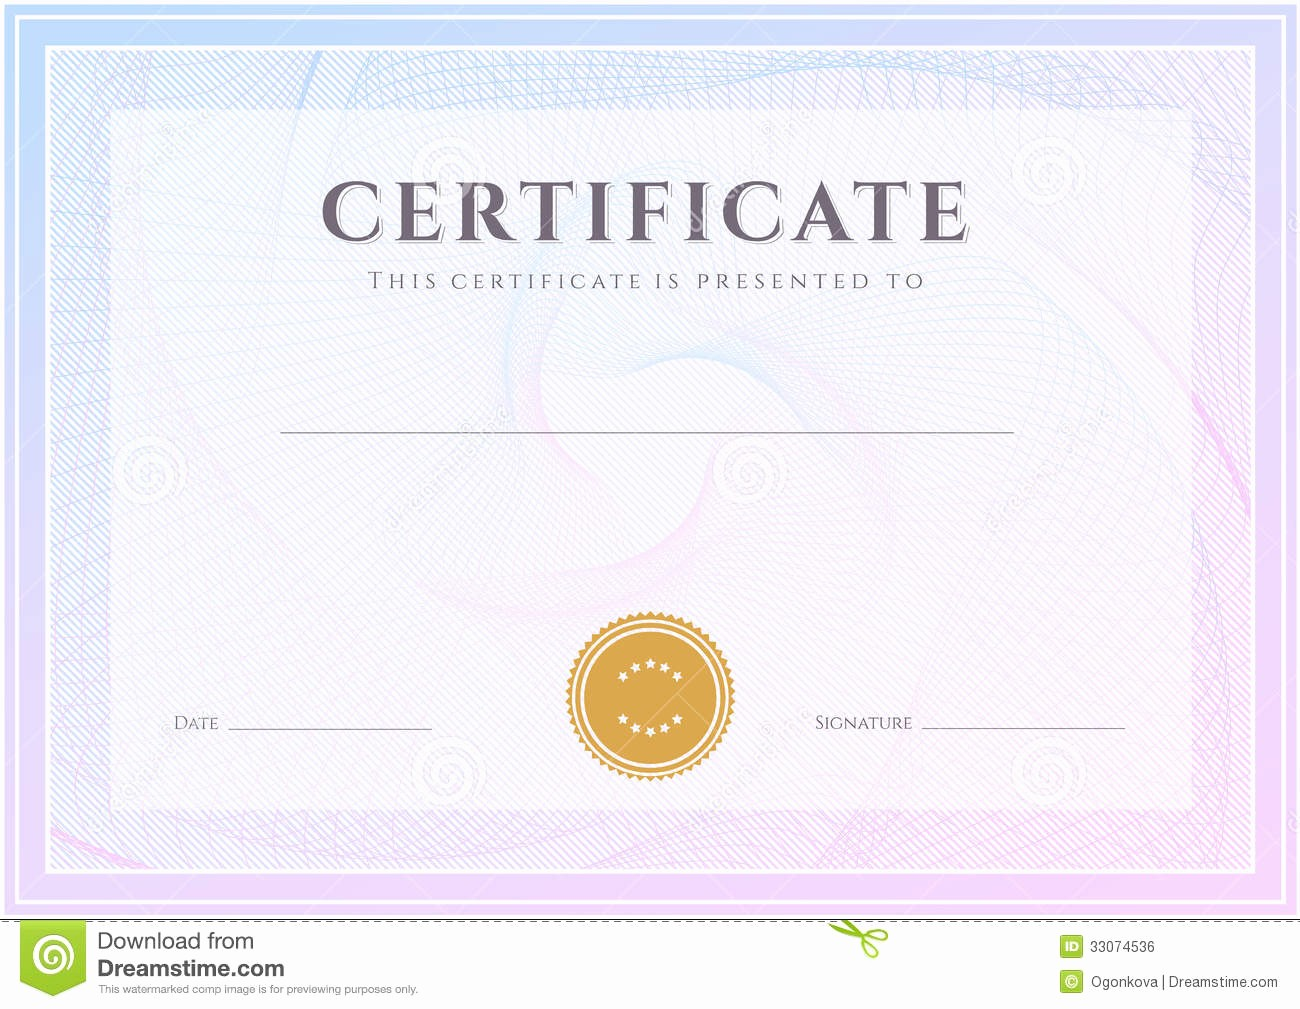 Certificate Background Design Free Download Luxury Certificate Diploma Template Award Pattern Stock Vector